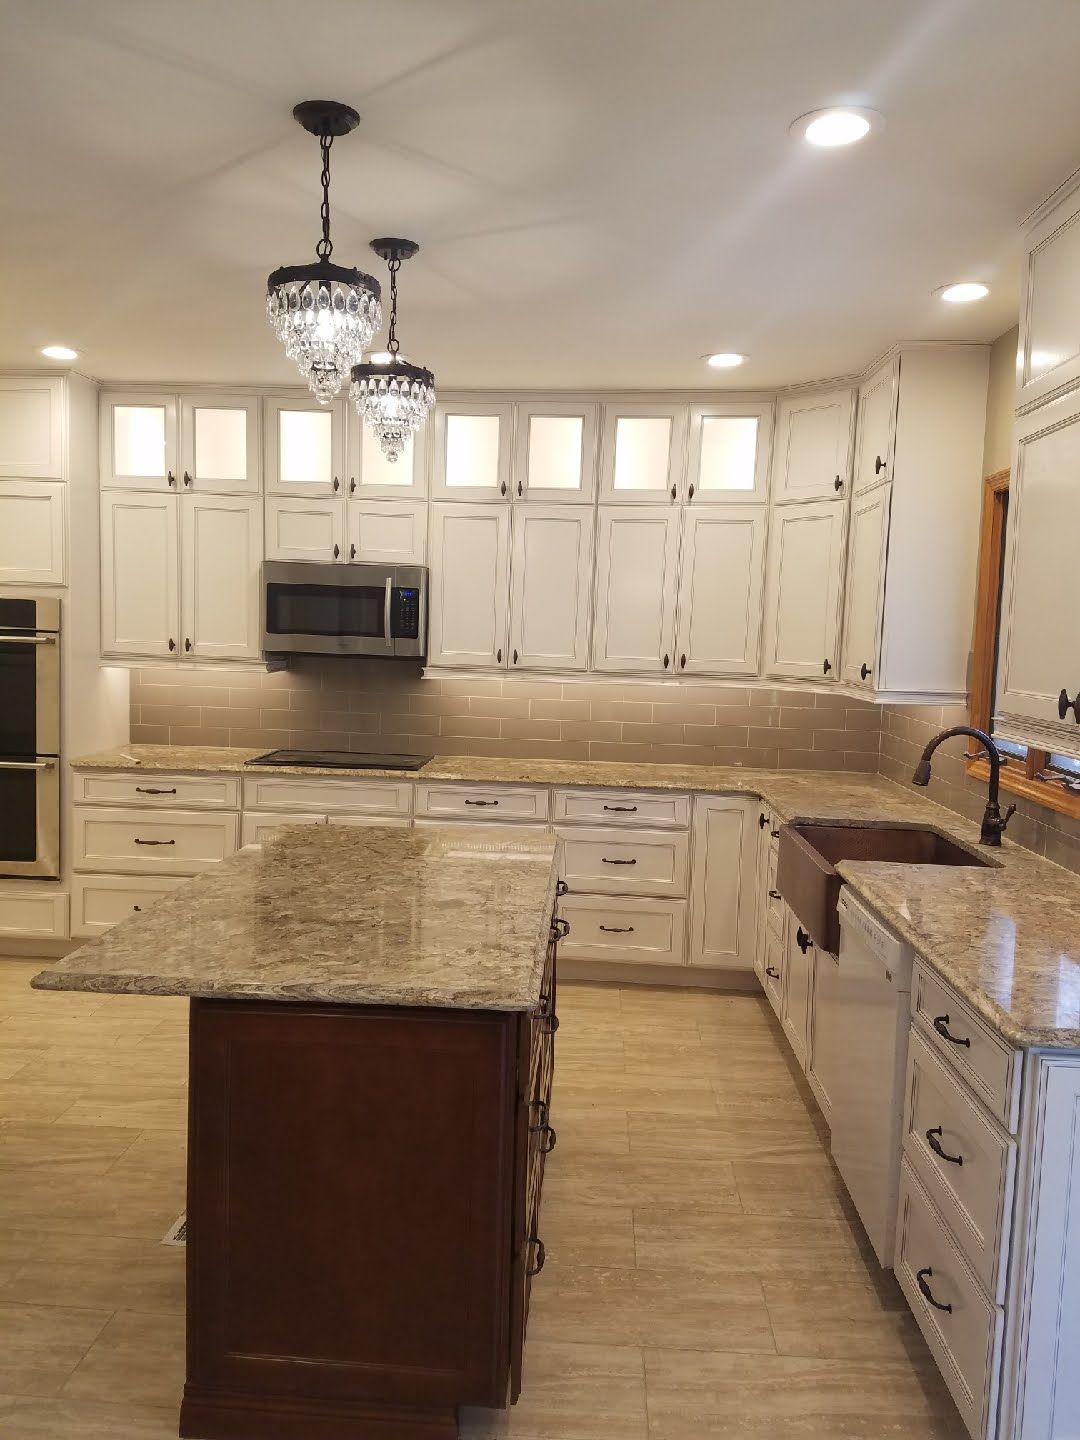 Two Tone Kitchen White Perimeter Double Stacked Cabinets And Cherry Island Interior Design Services Two Tone Kitchen Cabinetry